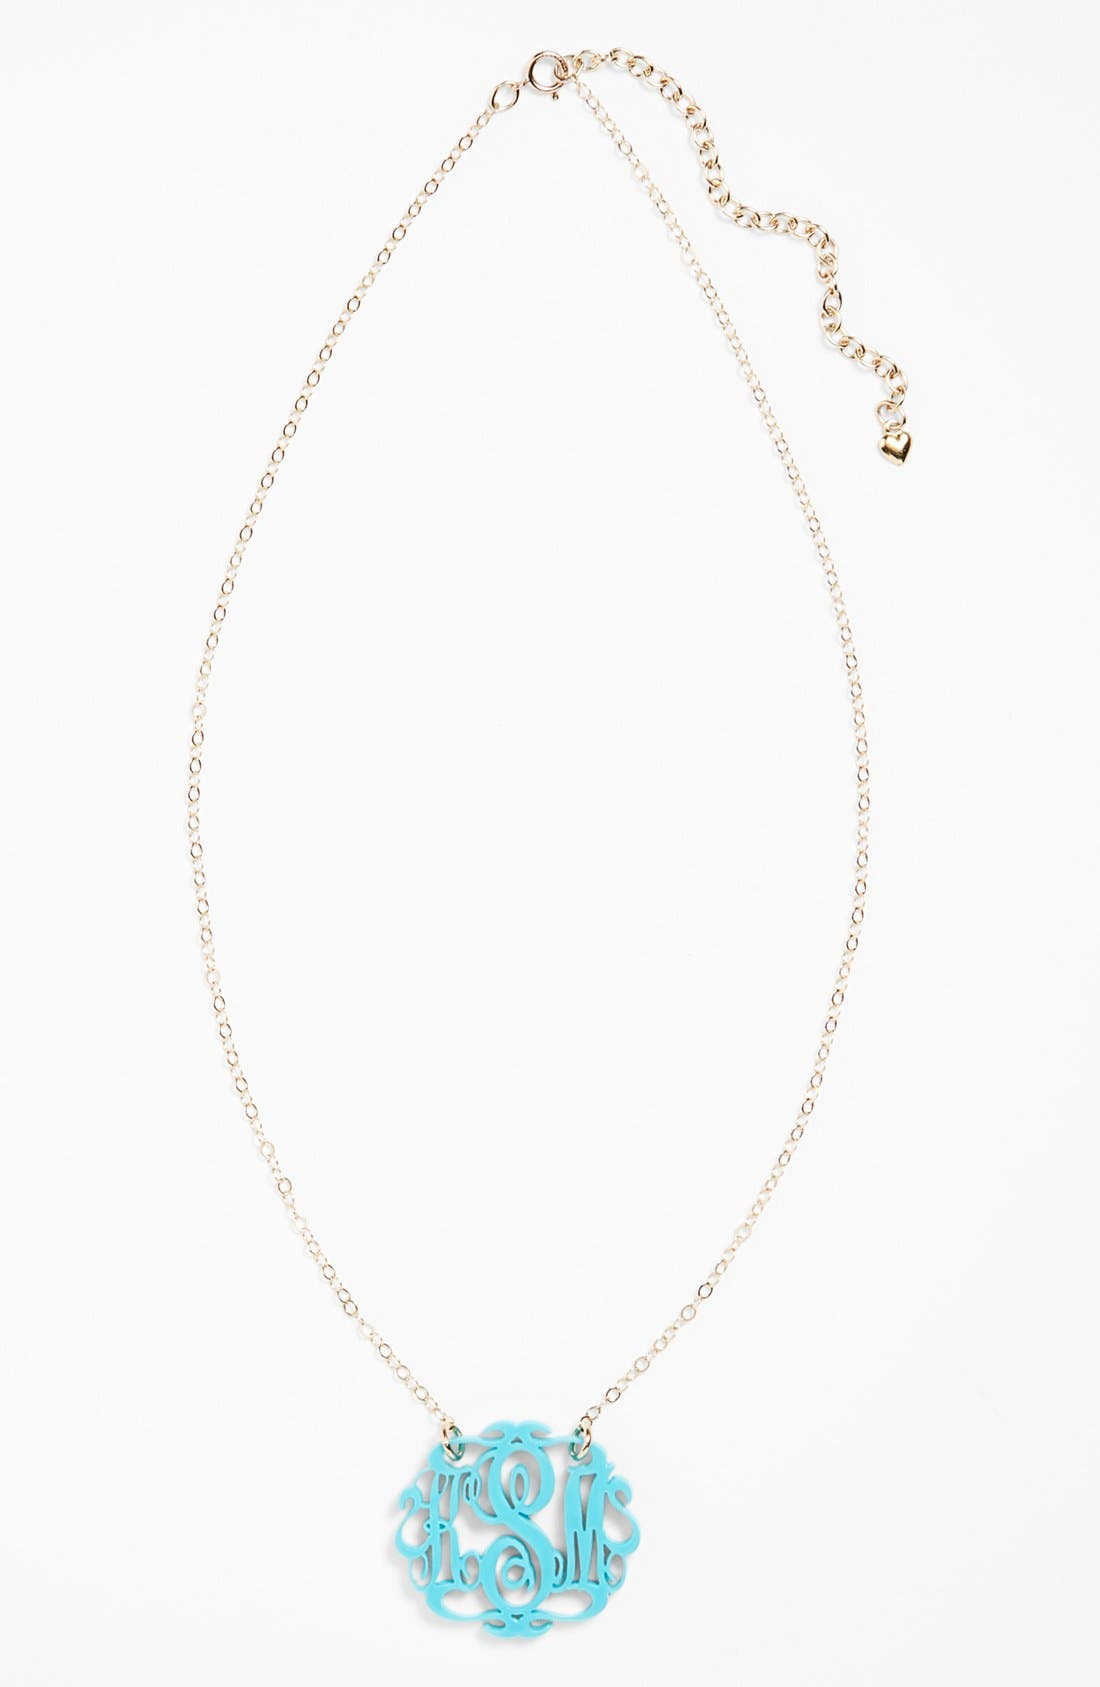 Main Image - Moon and Lola Small Oval Personalized Monogram Pendant Necklace (Nordstrom Exclusive)